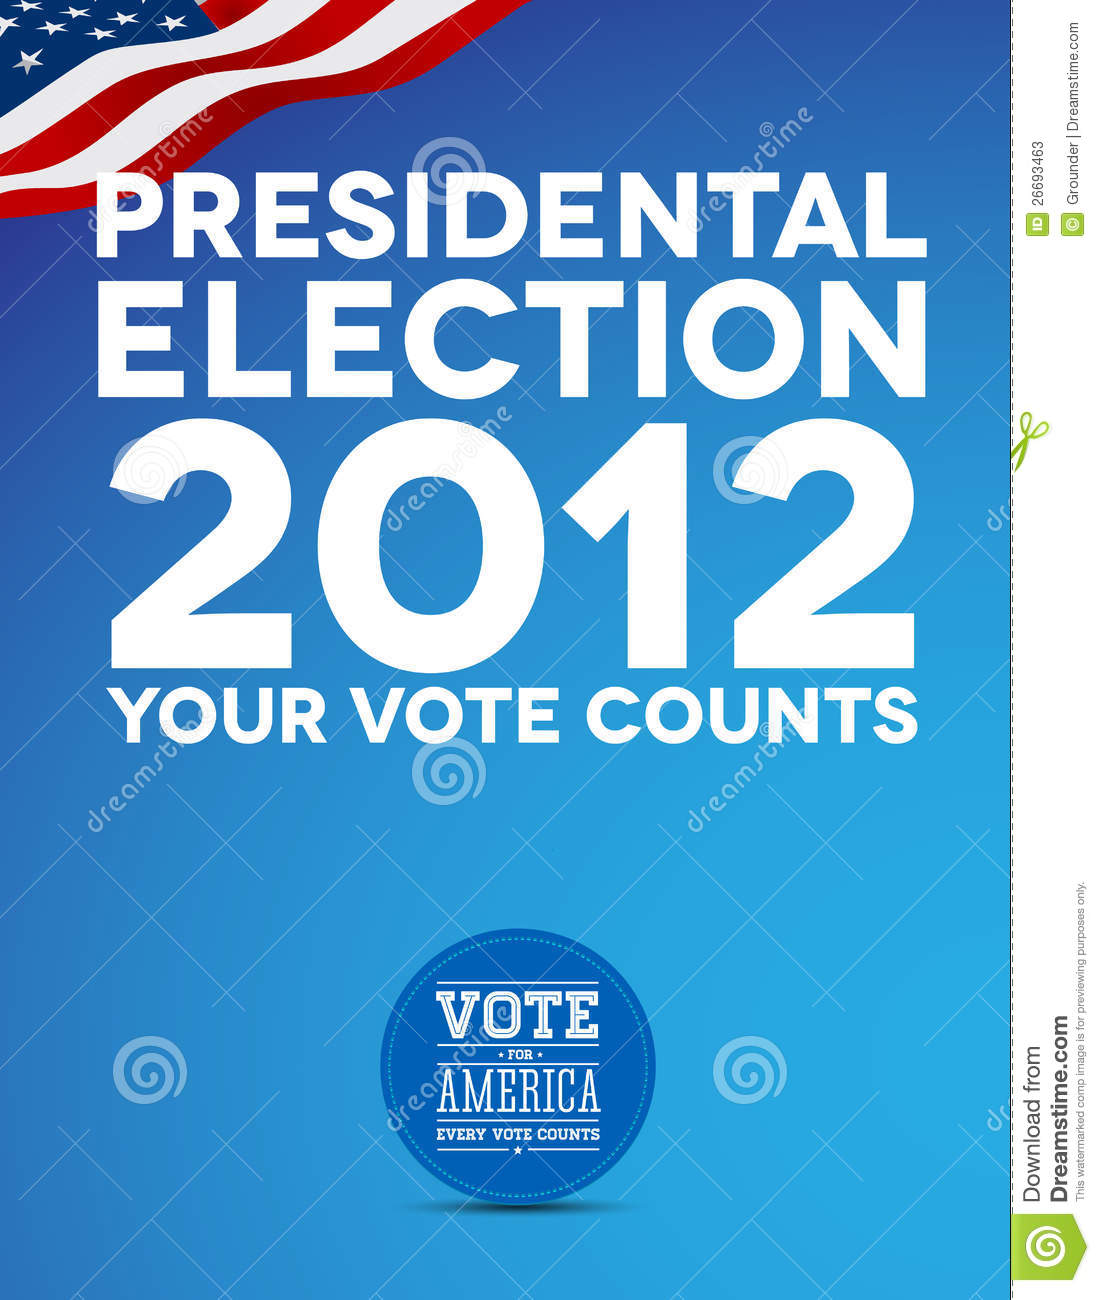 Rcm business plan 2012 presidential election